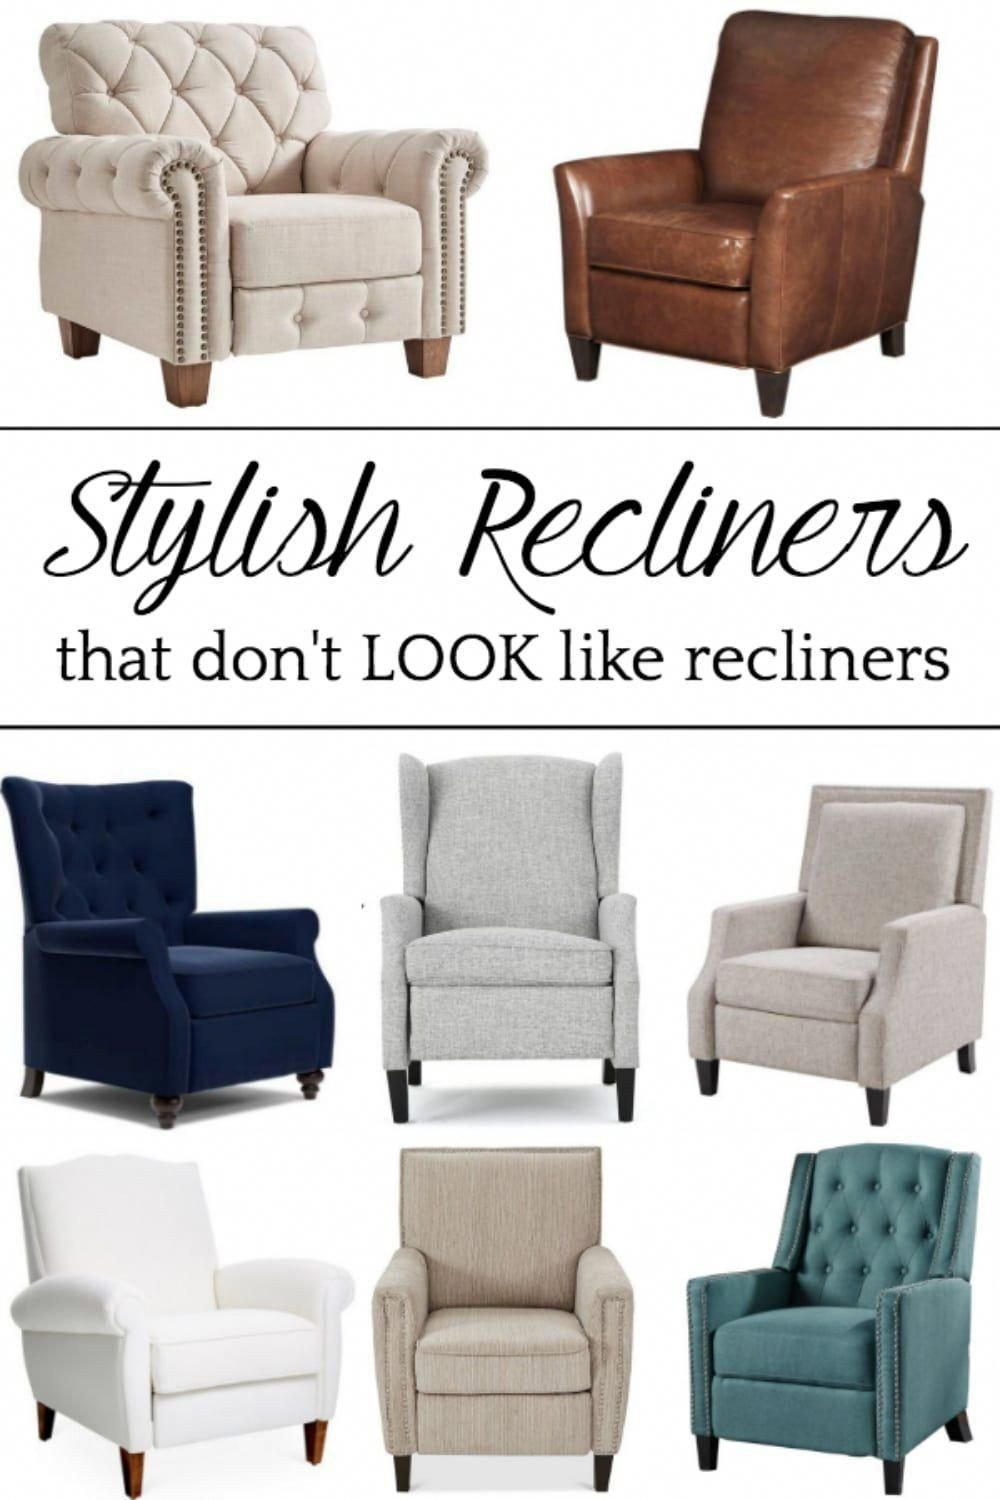 Small Recliners for Bedroom New Stylish Recliners for A Bud New Home